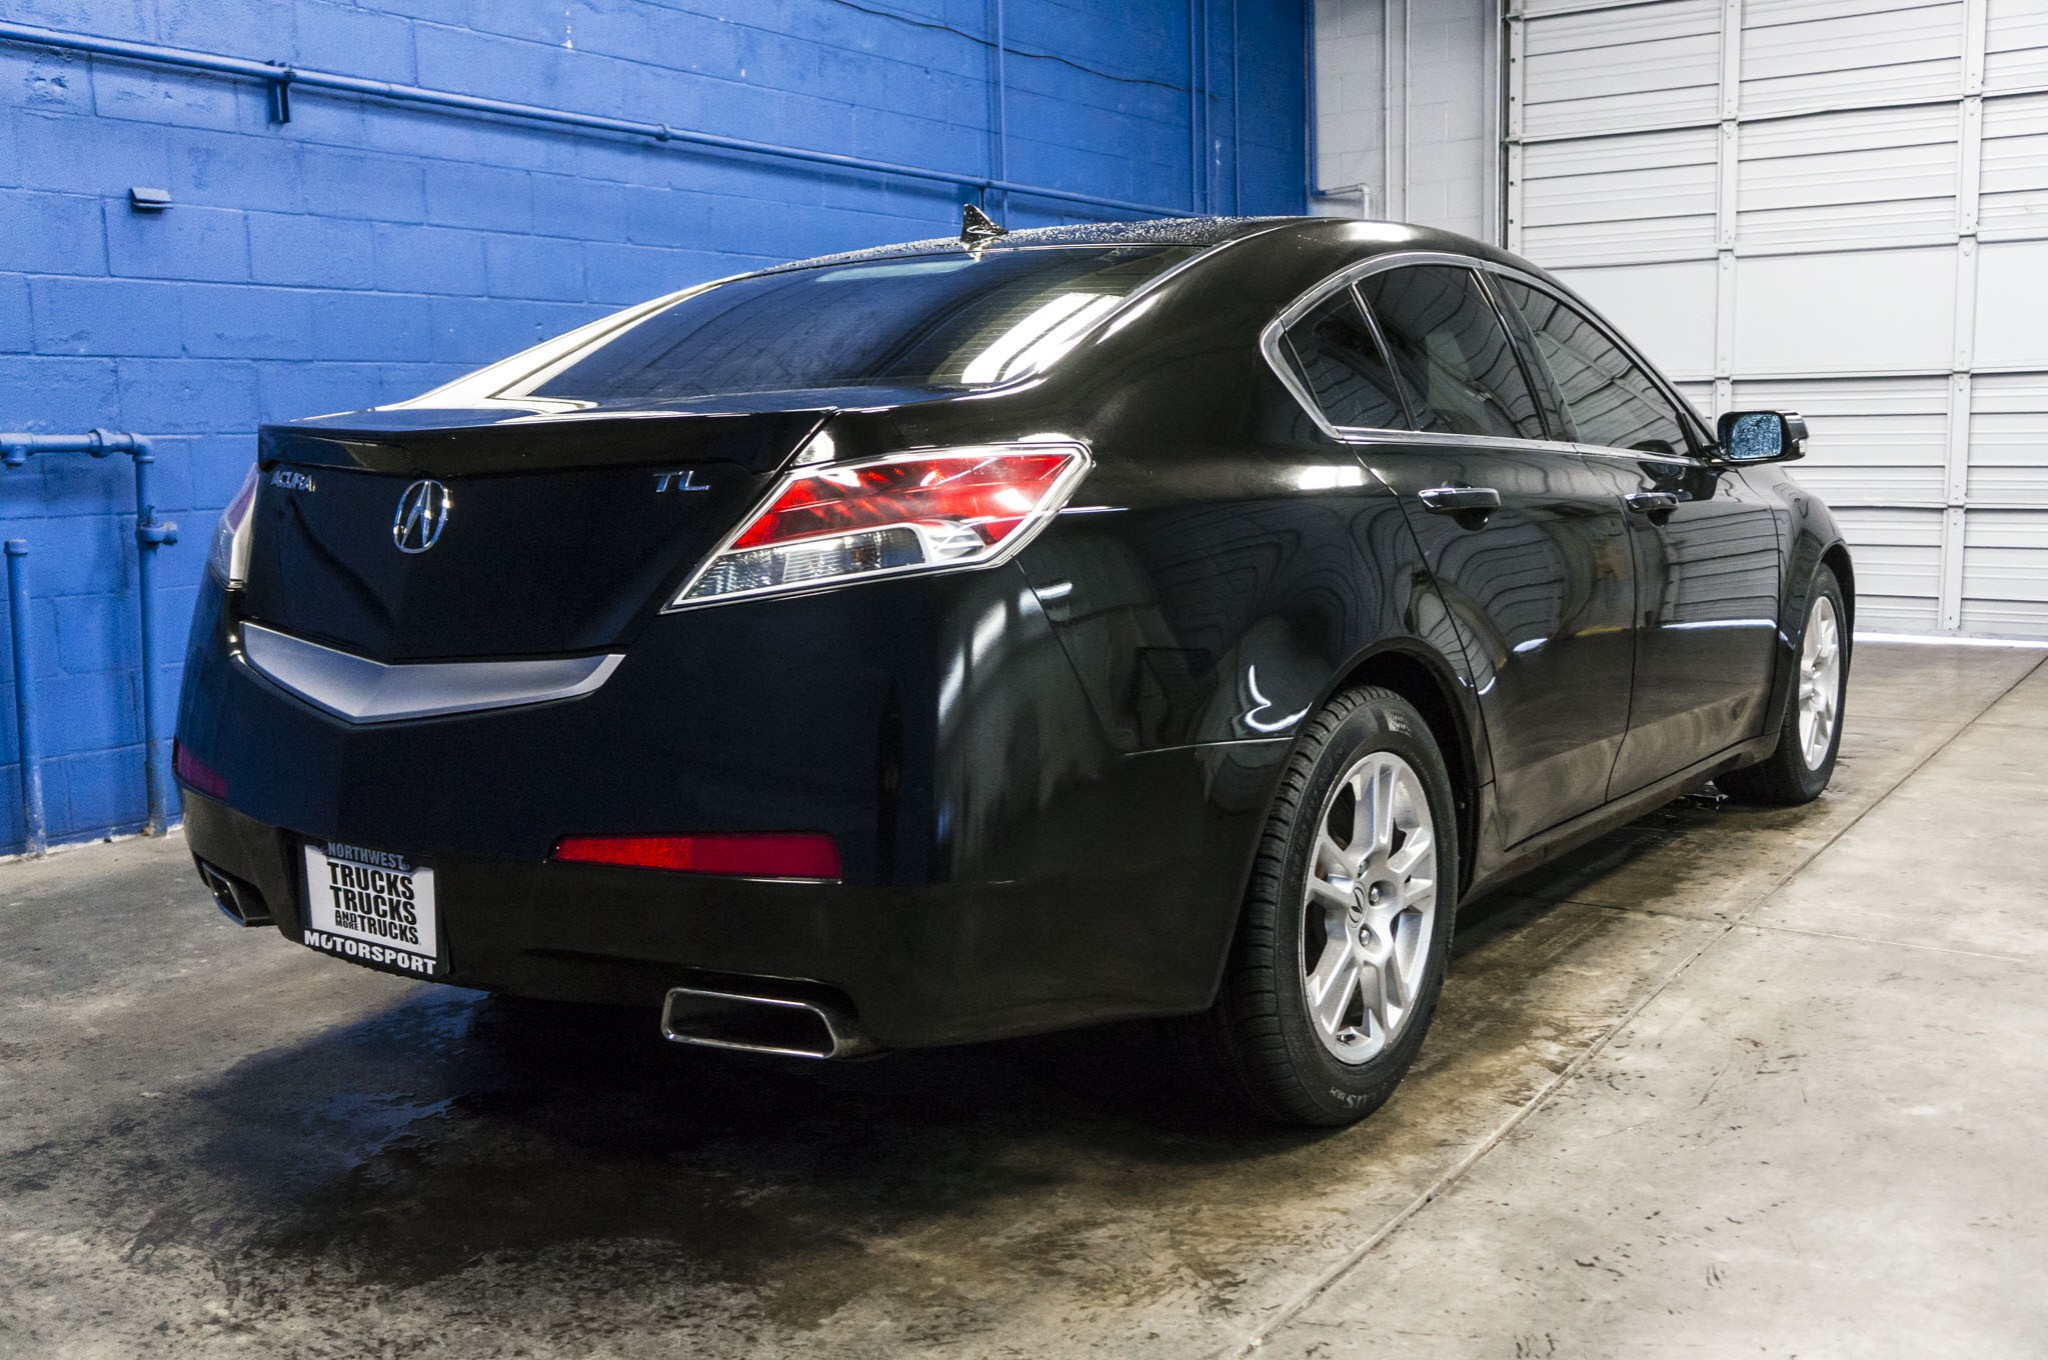 sale pkg tariq suffolk available auto sdn nassau for in used tech tl long tsx acura car ny new melvile queens island